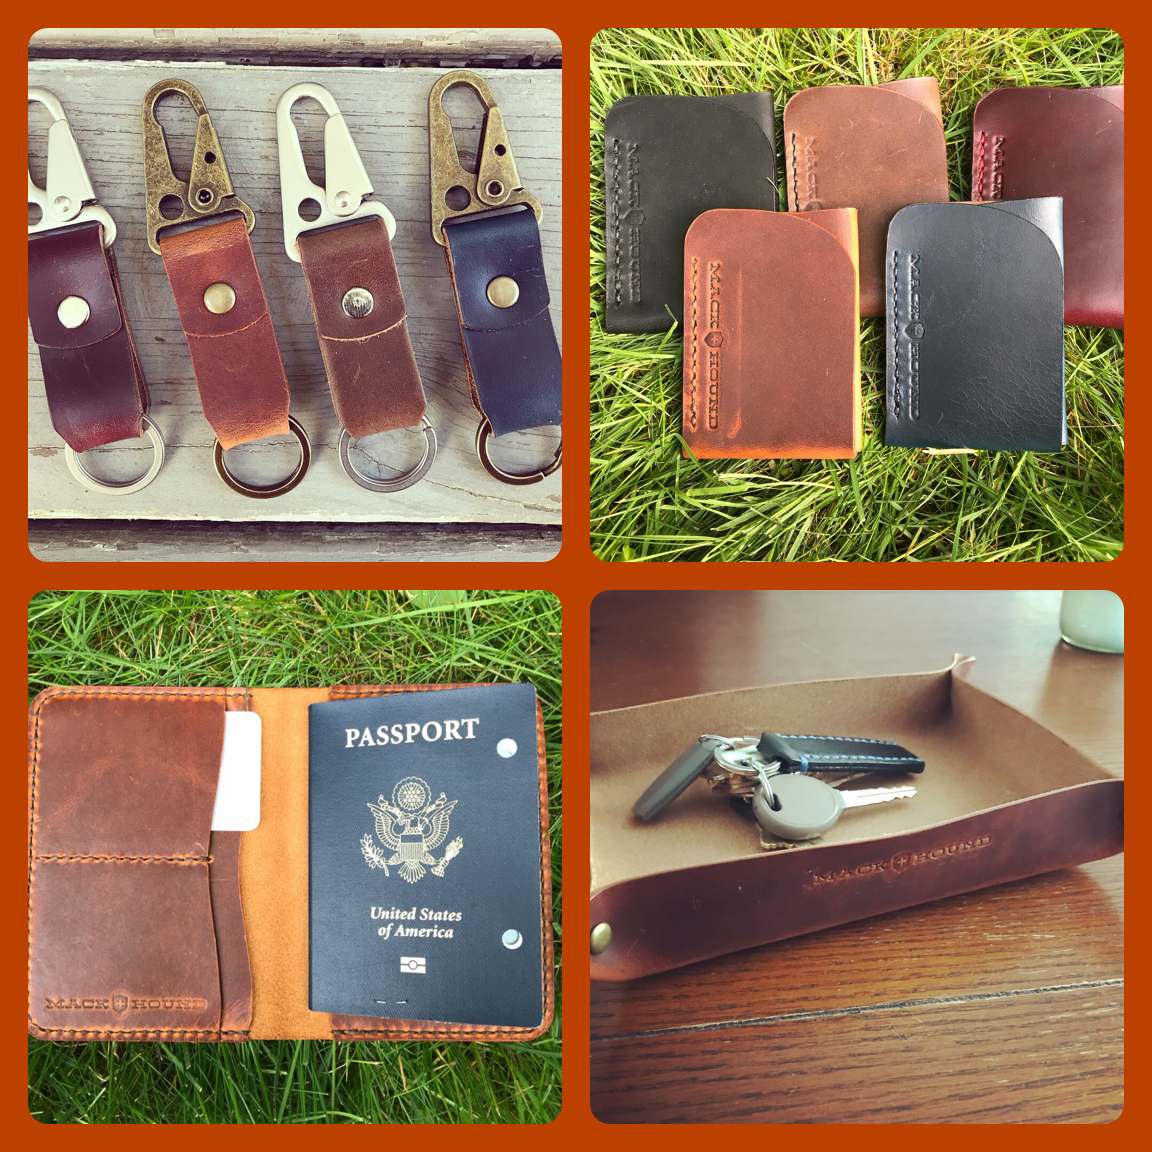 Mack + Hound - Mack + Hound is a small leather and dry goods company hailing from Warwick, RI. Everything they make is cut, stitched, and finished by hand. Their work ranges from wallets, journal covers, watch straps, key clips, home goods and more. The pricing ranges from $12 to $100.